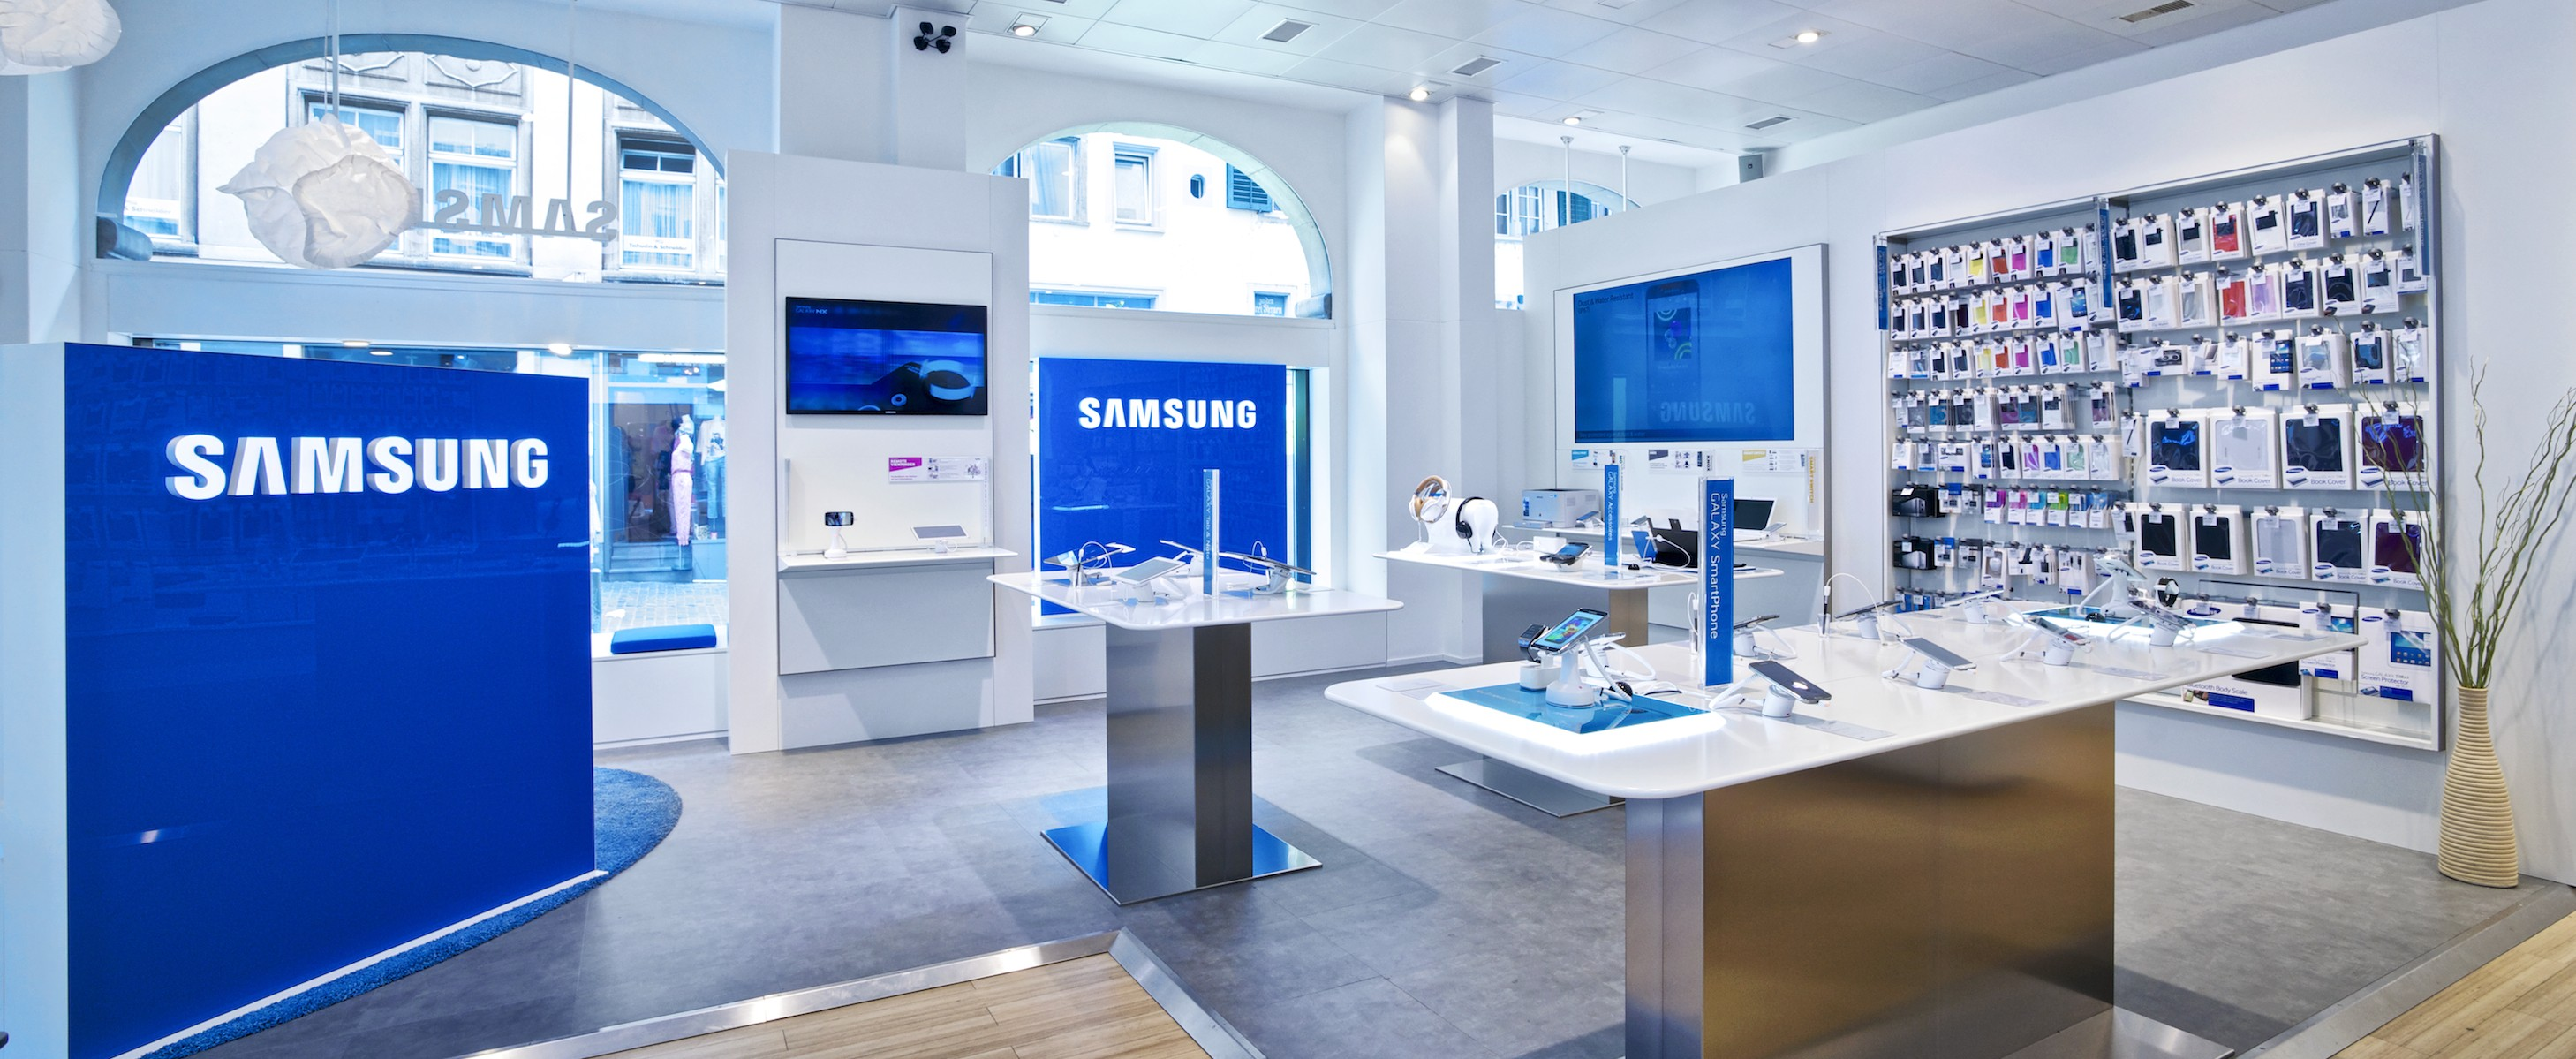 Samsung Point of Sale